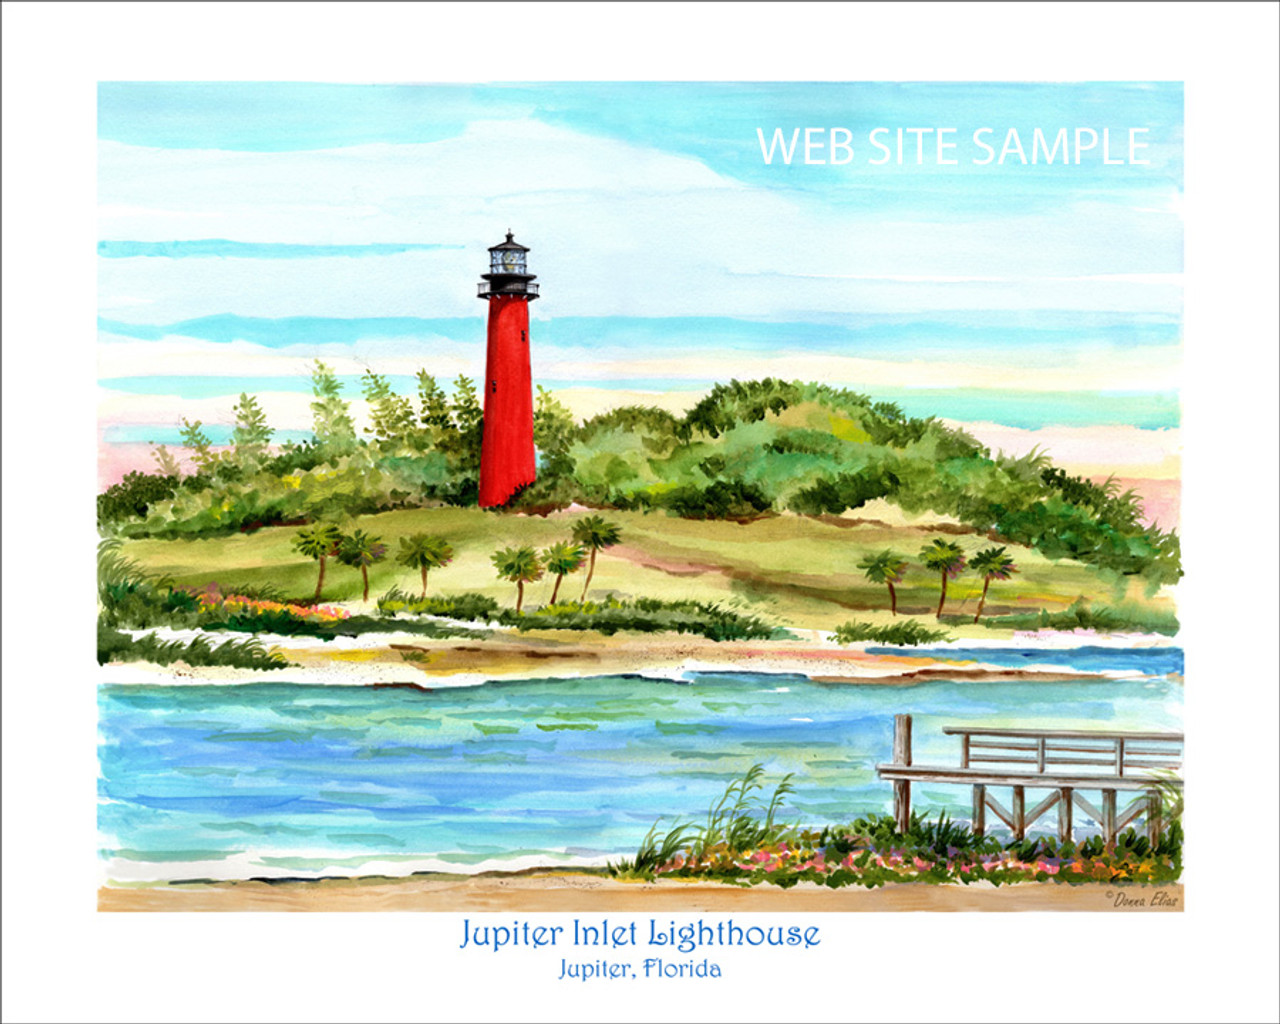 Jupiter Inlet Lighthouse copyright 2020 by Donna Elias